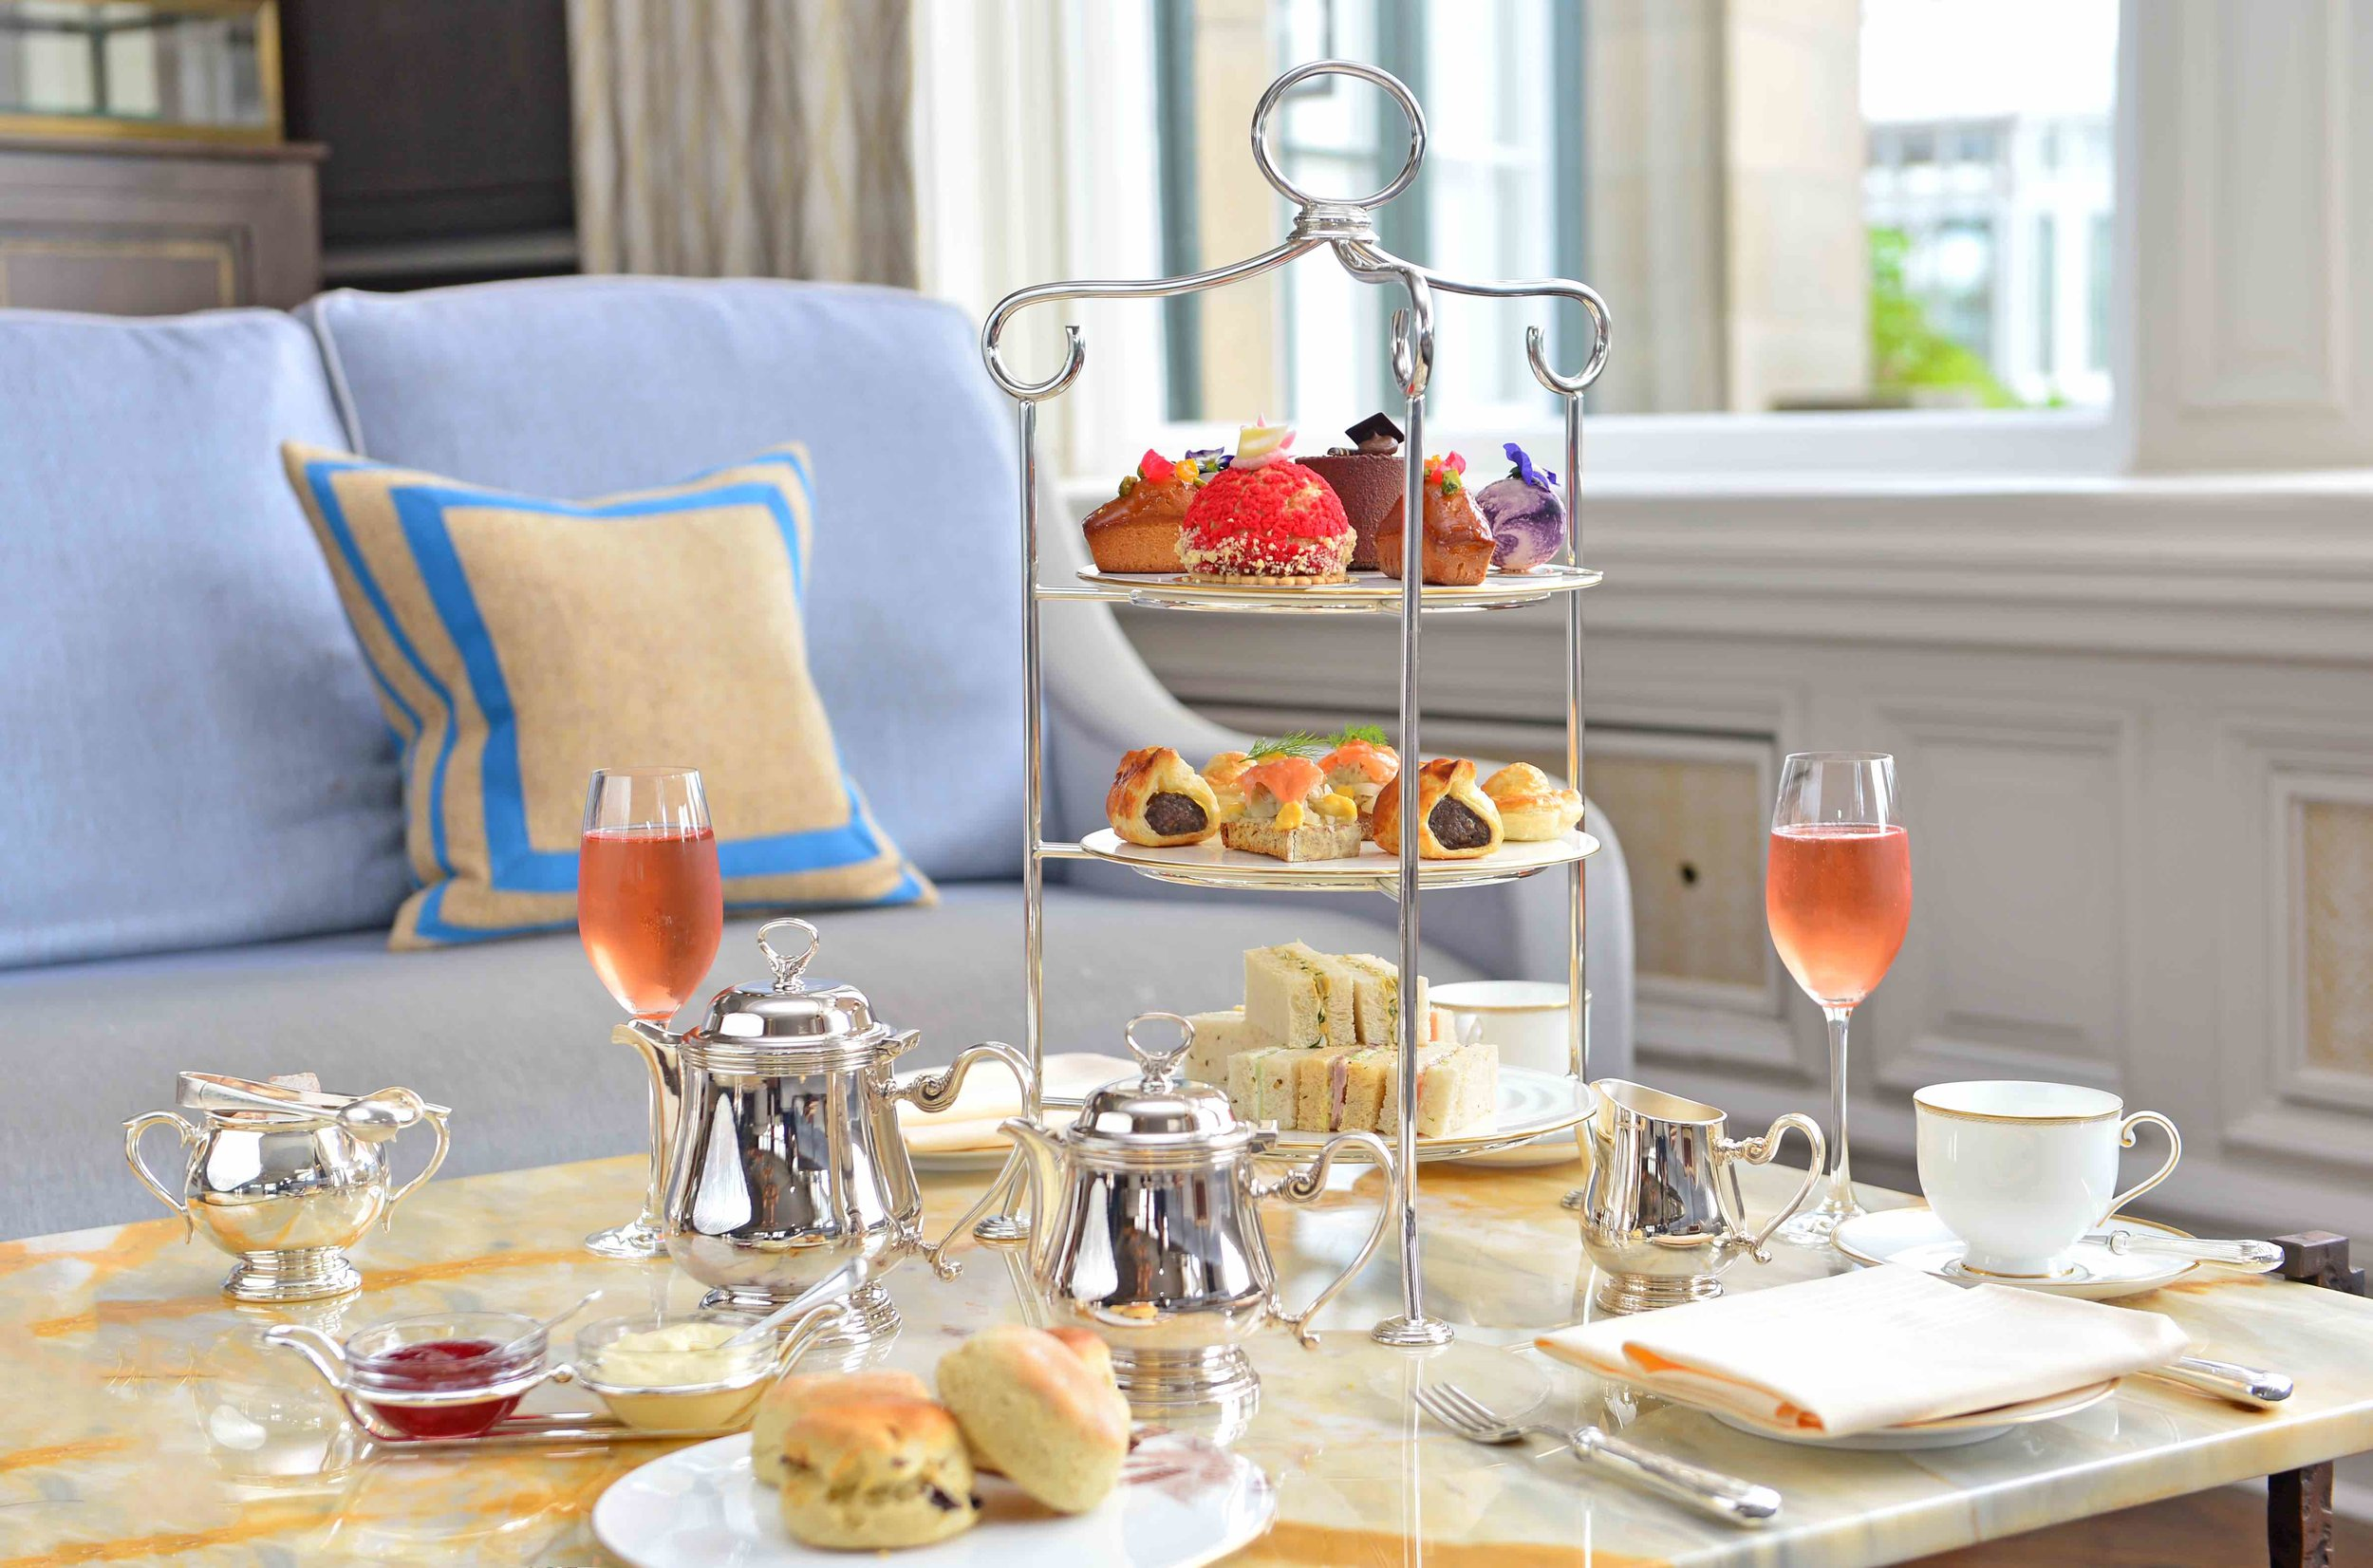 Free champagne with Afternoon tea -